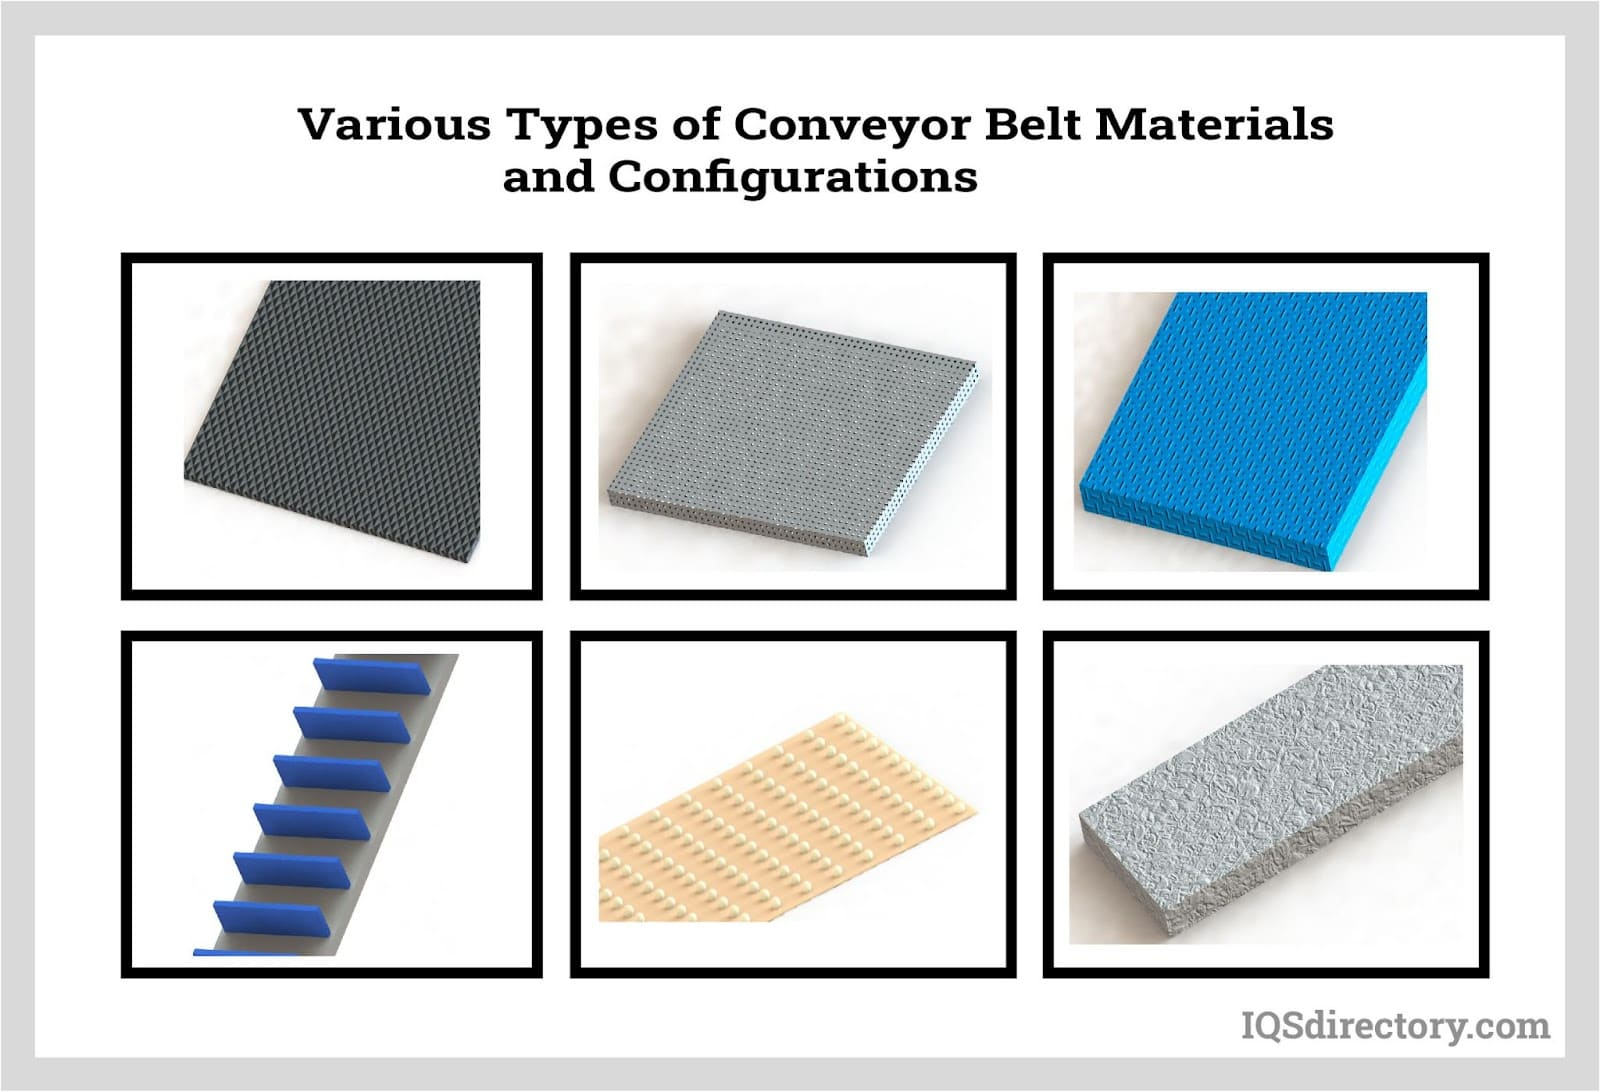 Various Types of Conveyor Belt Materials and Configurations